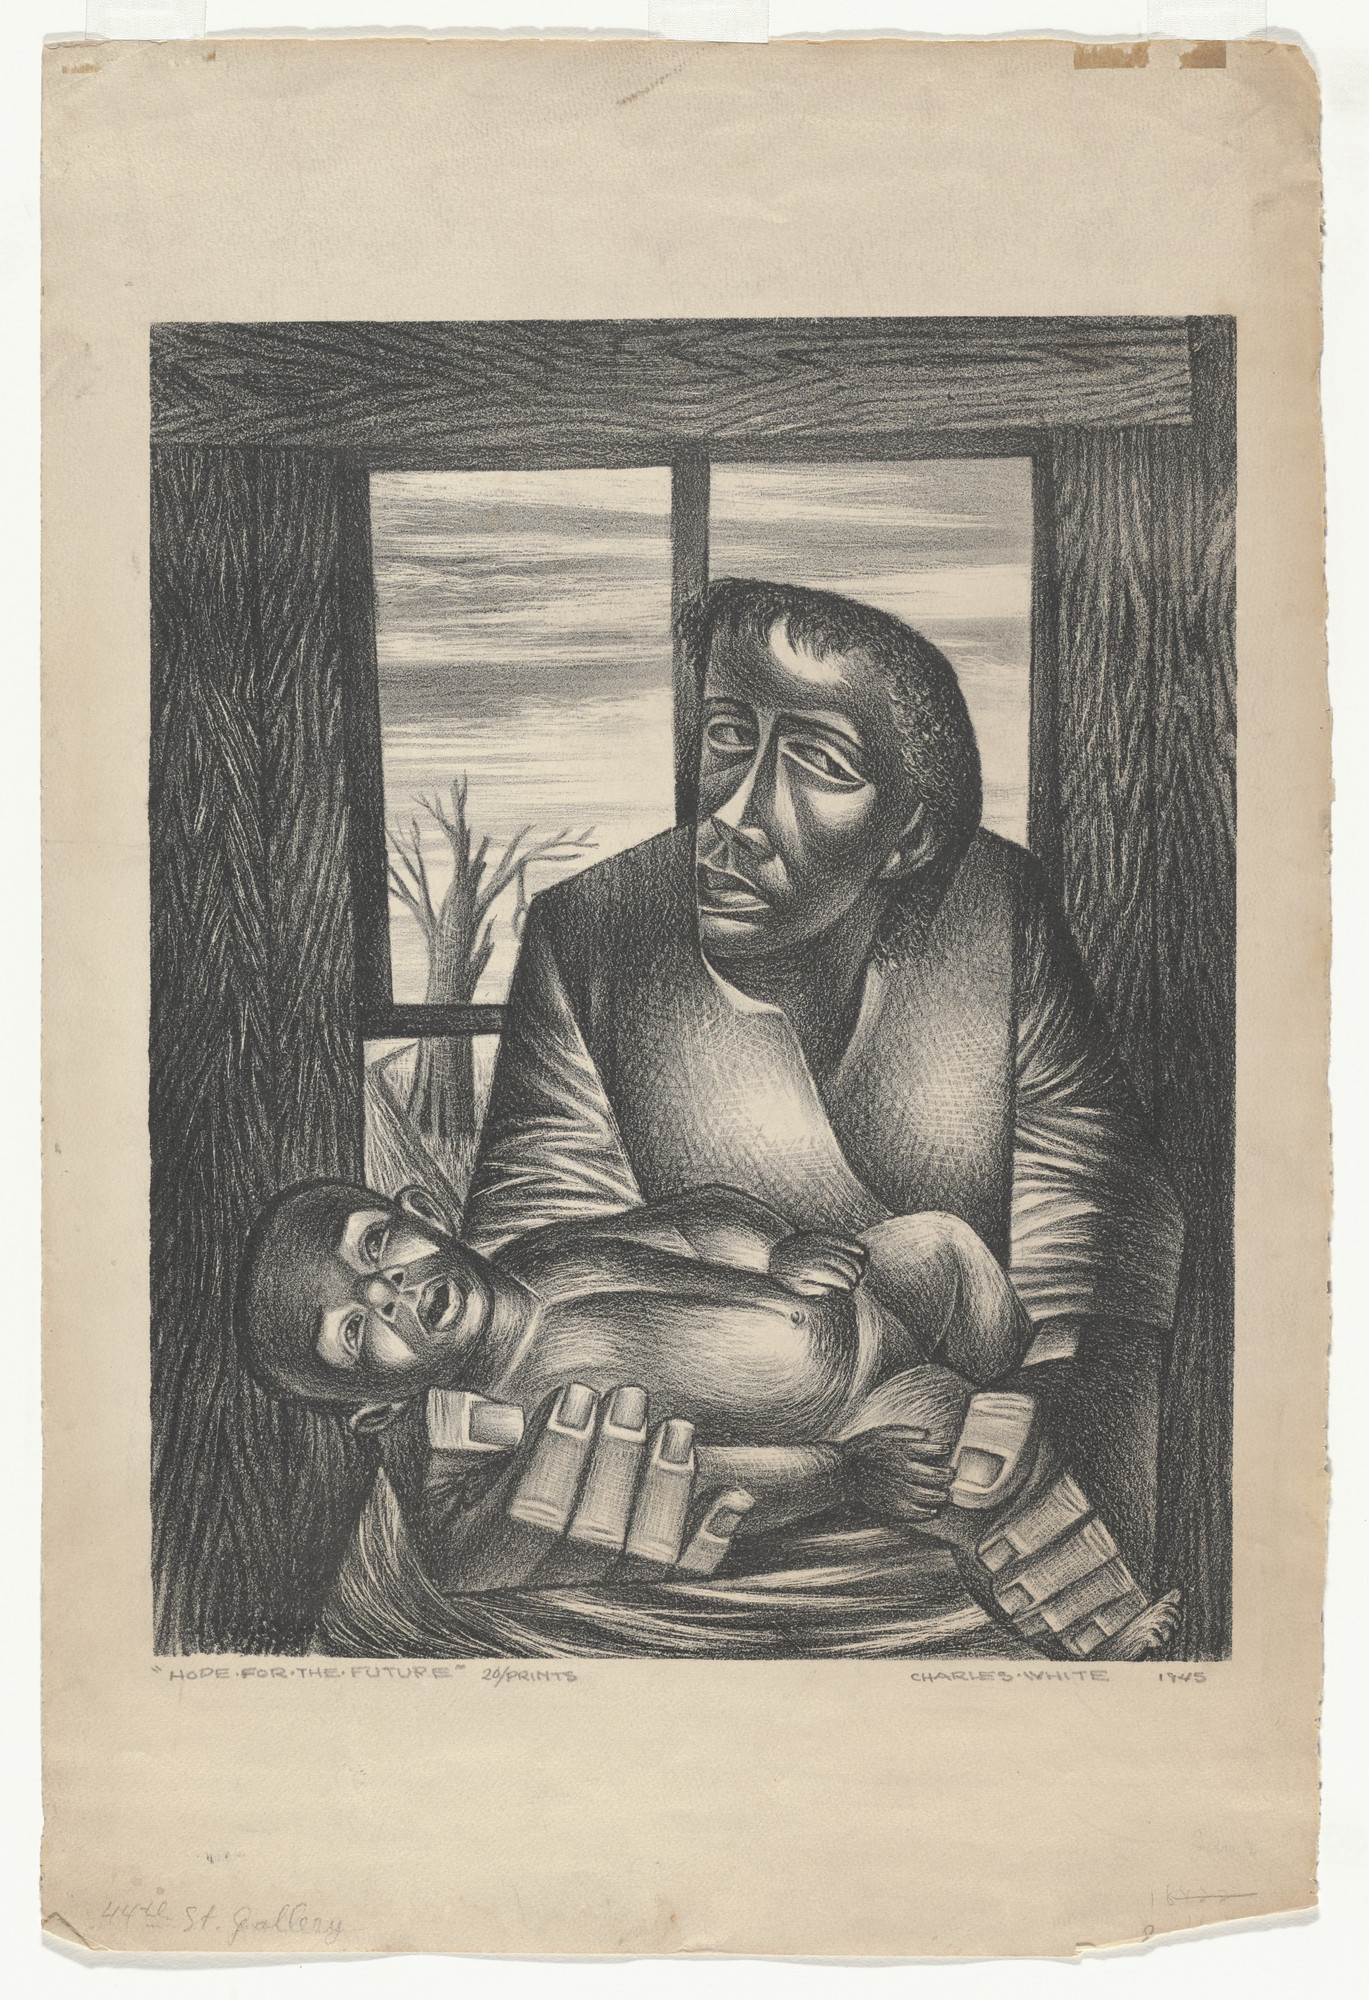 Charles White. Hope for the Future. 1945